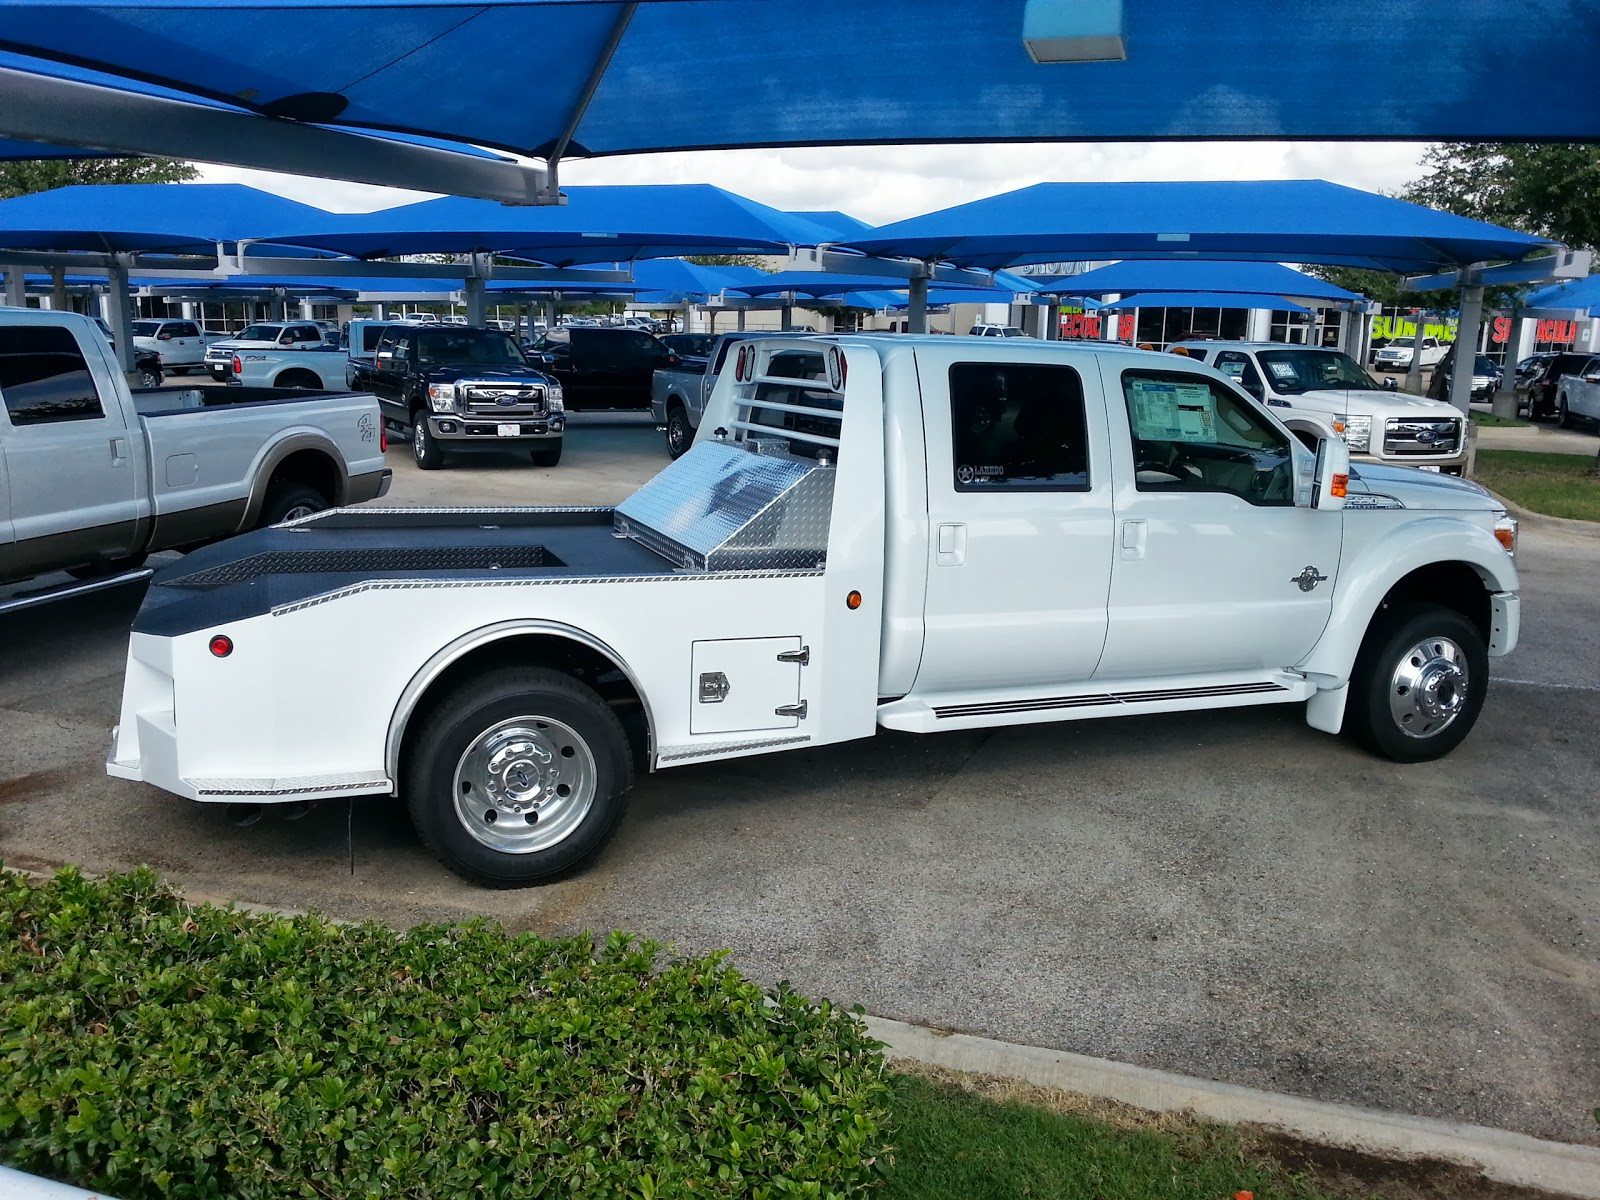 martin bed beds aluminum accesskeyid truck bodies pennsylvania quality disposition custom alloworigin